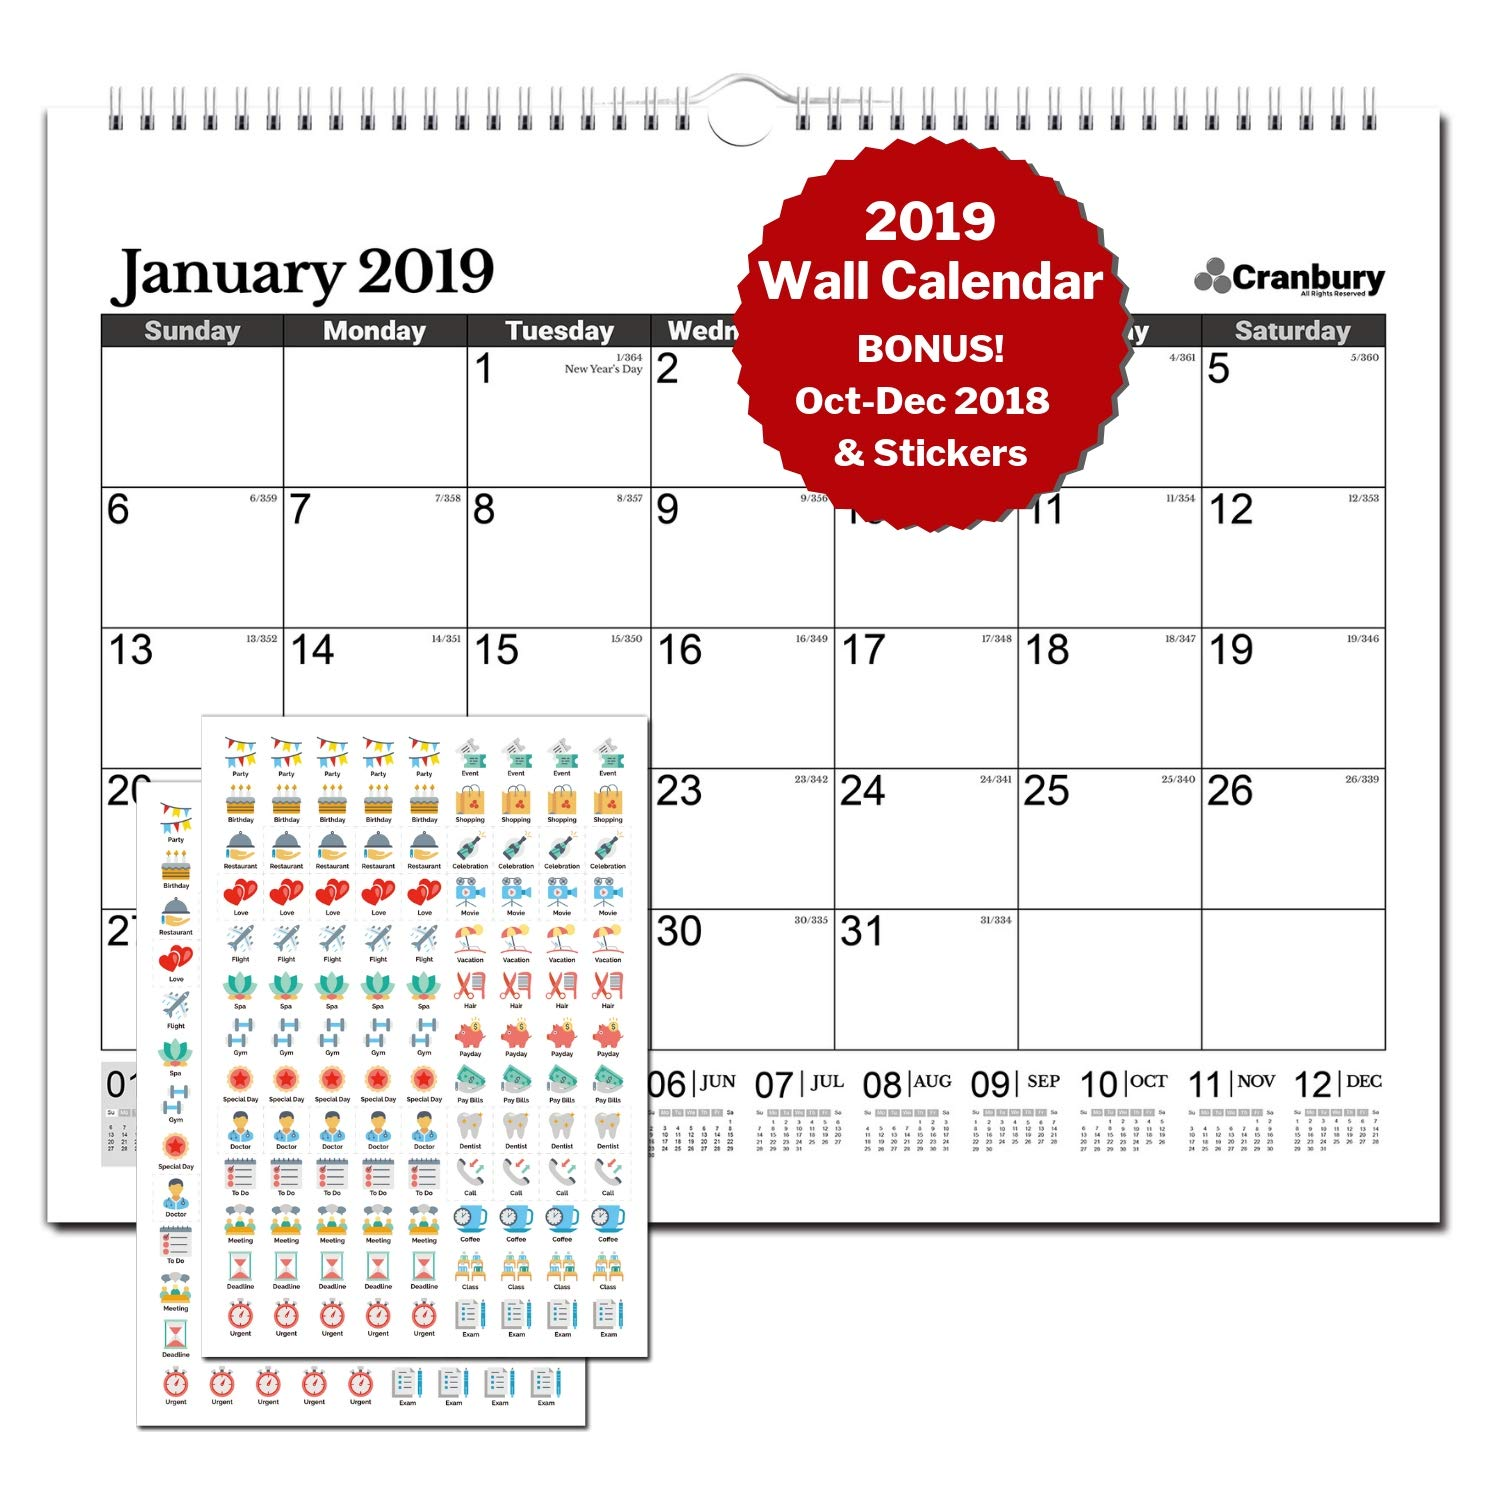 "Large Wall Calendar 2018-2019 Monthly: Hanging Calendar with Planner Stickers for Family and Office, 15 Months 15x12"" (Black), USE Now - October 2018 to December 2019, by Cranbury by Cranbury (Image #1)"